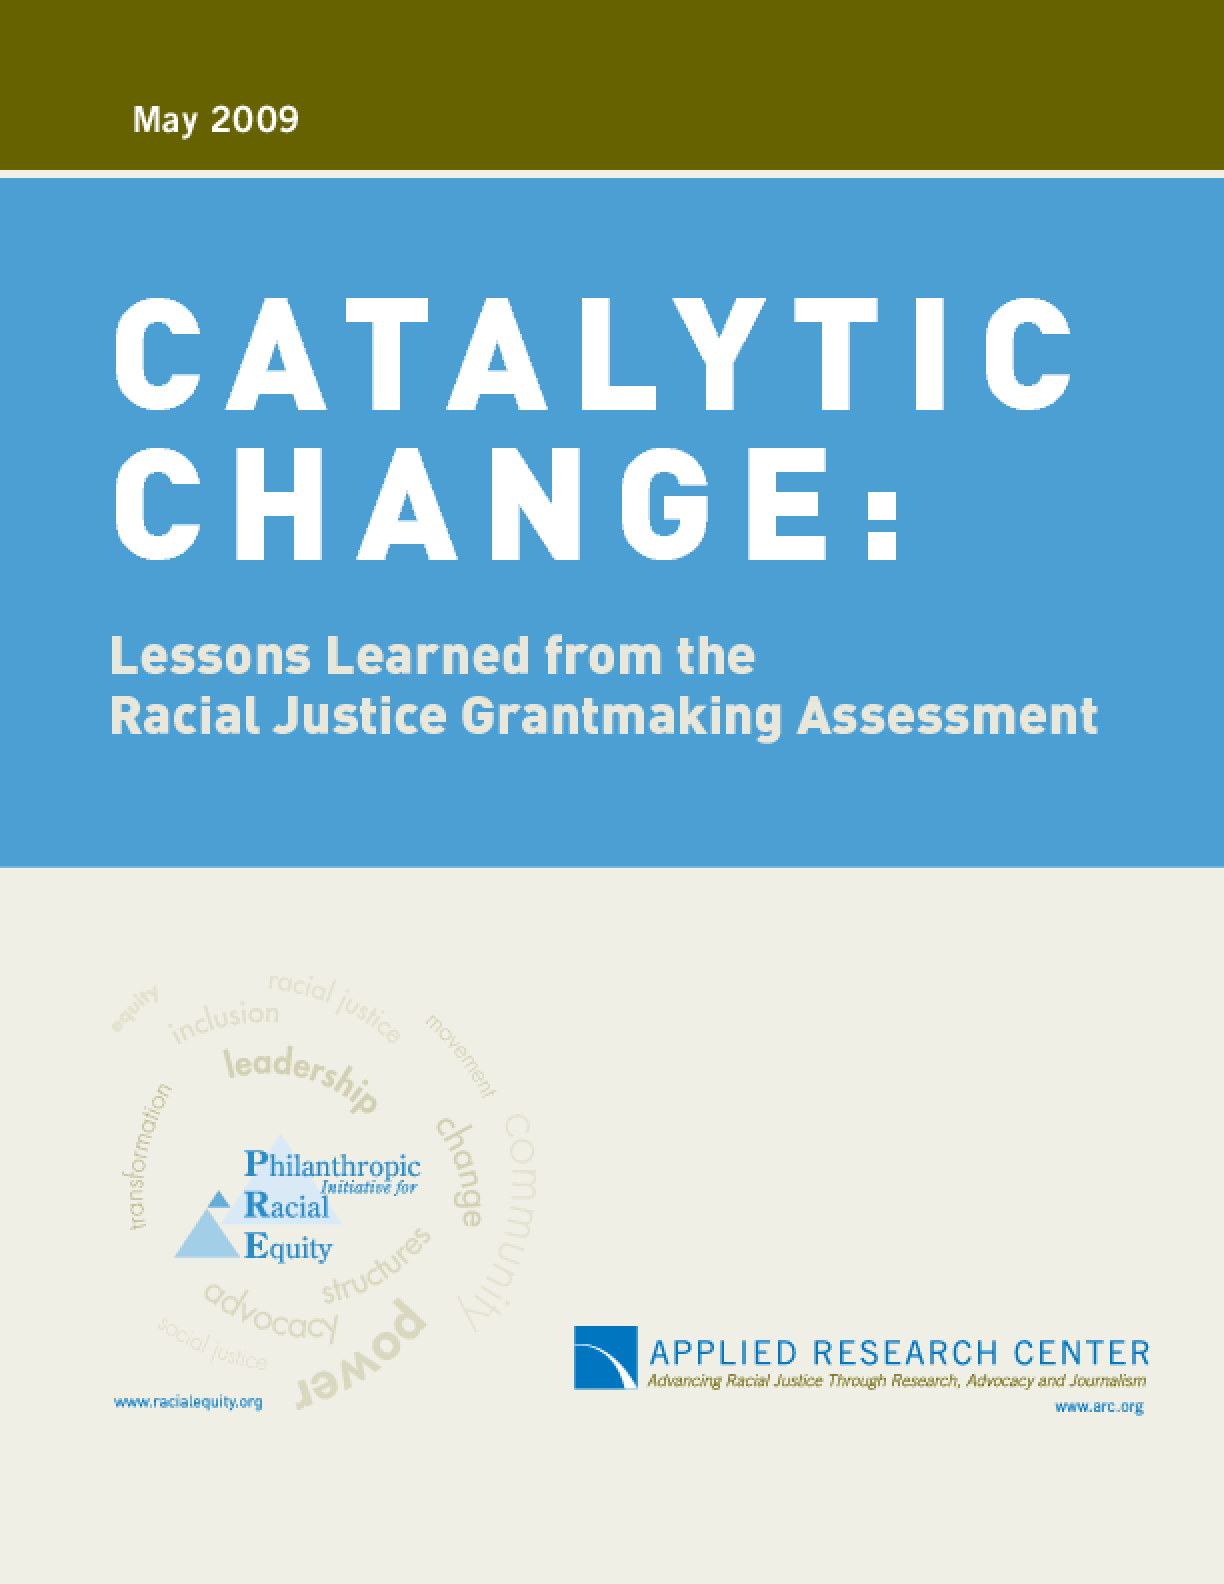 Catalytic Change: Lessons Learned from the Racial Justice Grantmaking Assessment